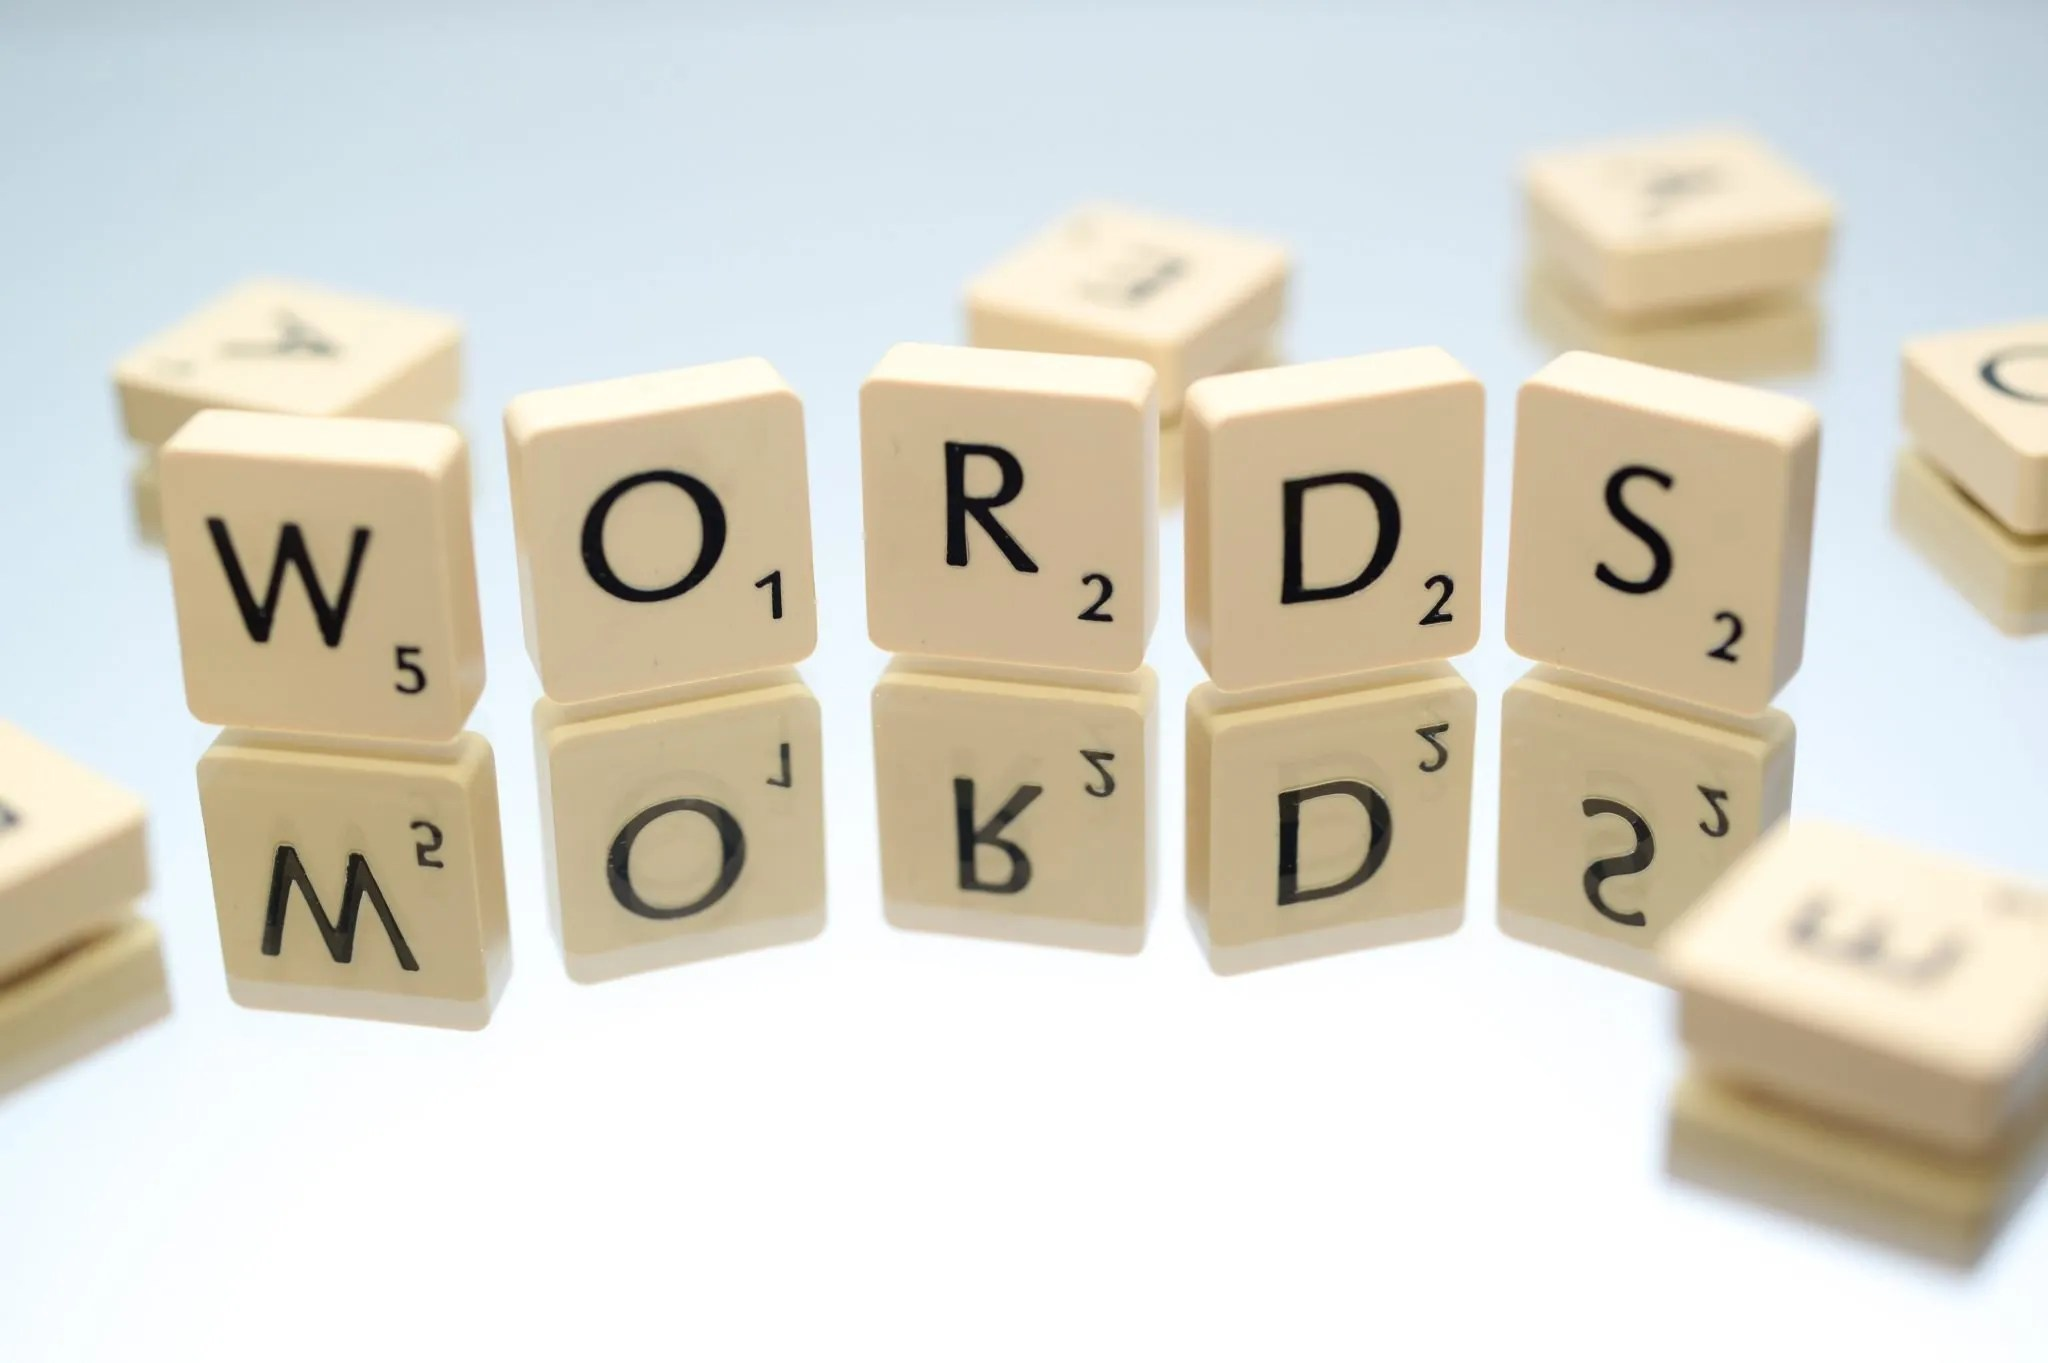 What are Stop Words?